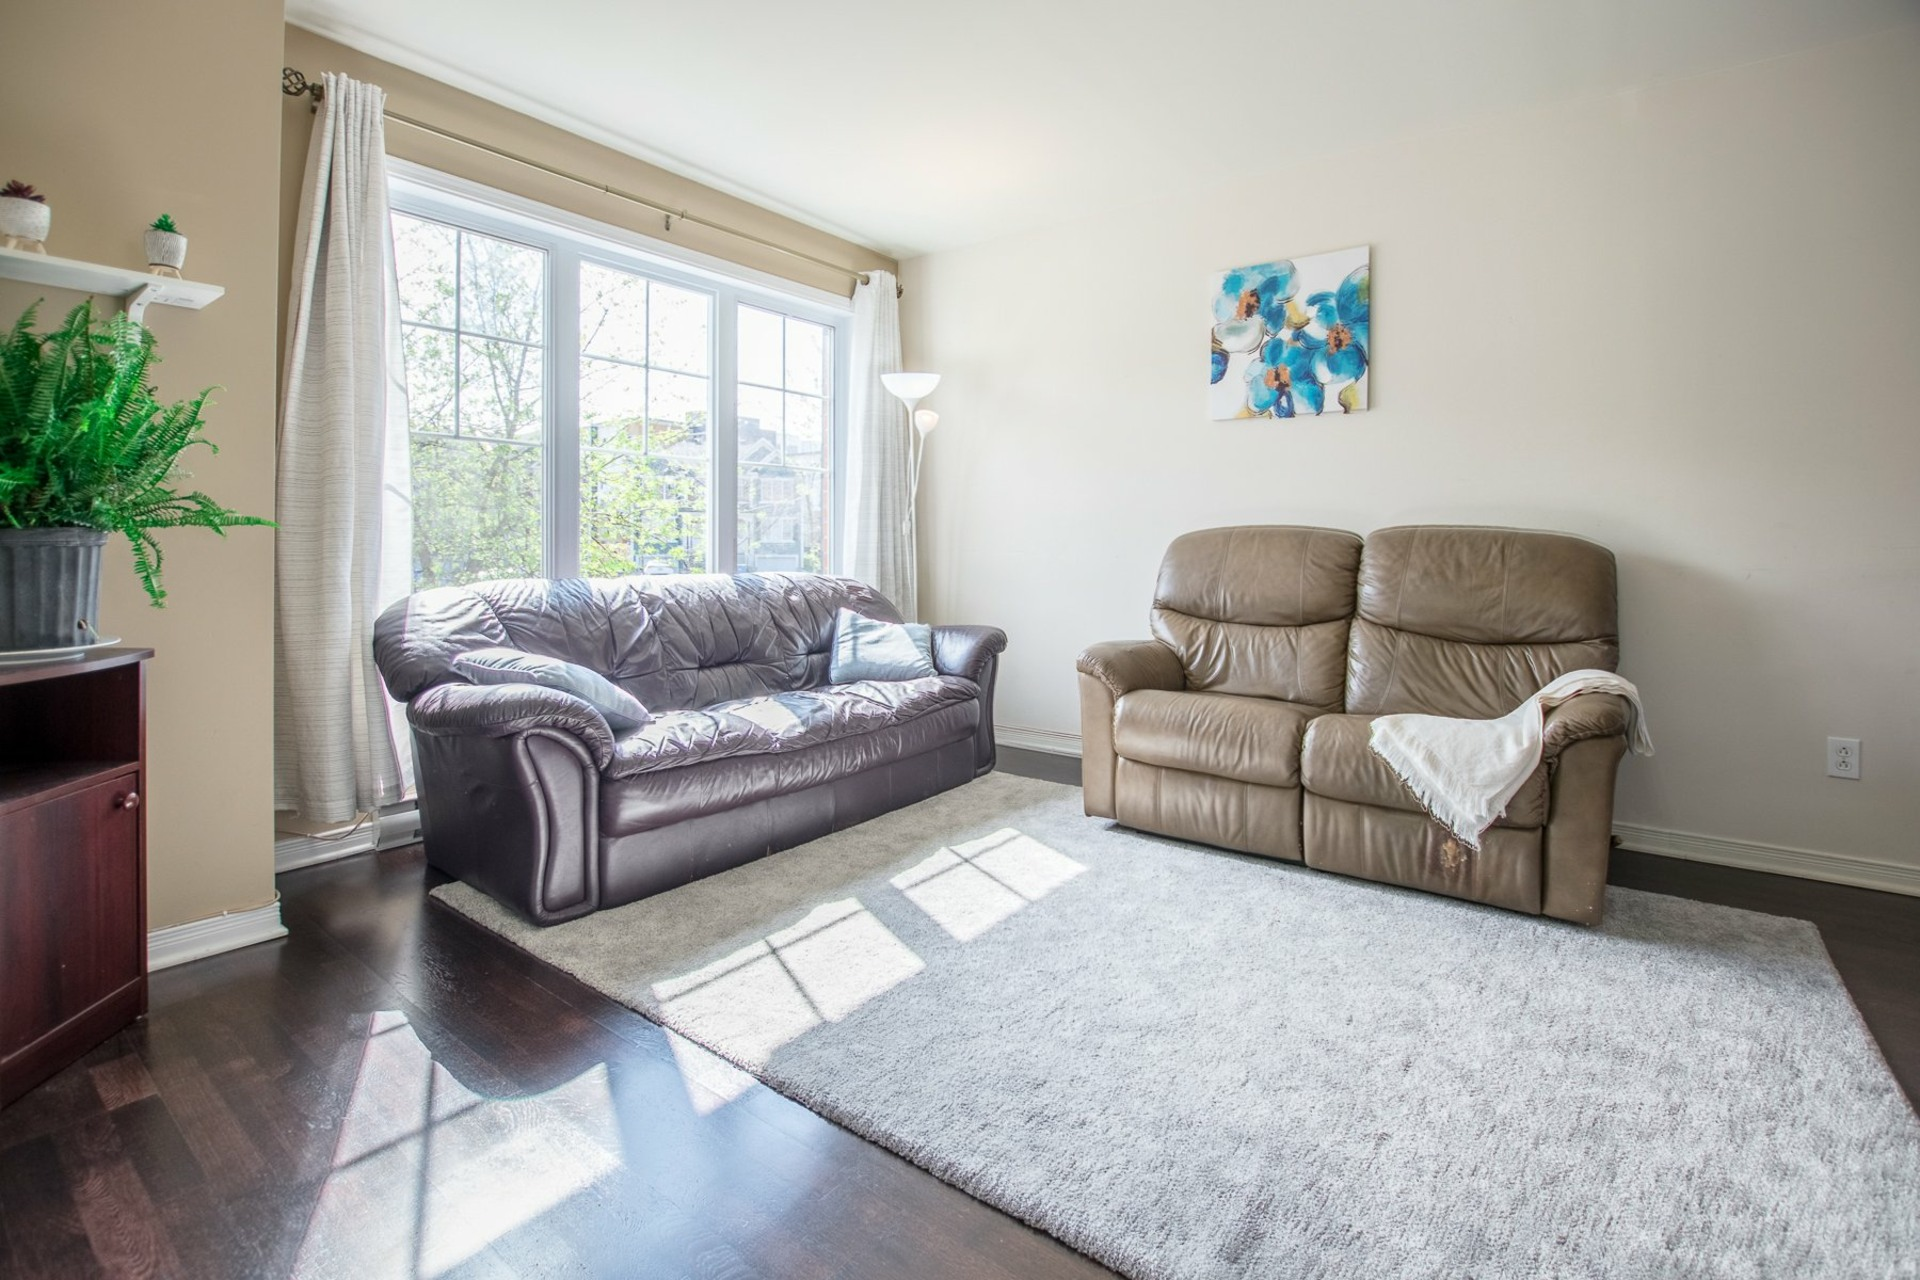 image 2 - Apartment For sale Châteauguay - 8 rooms